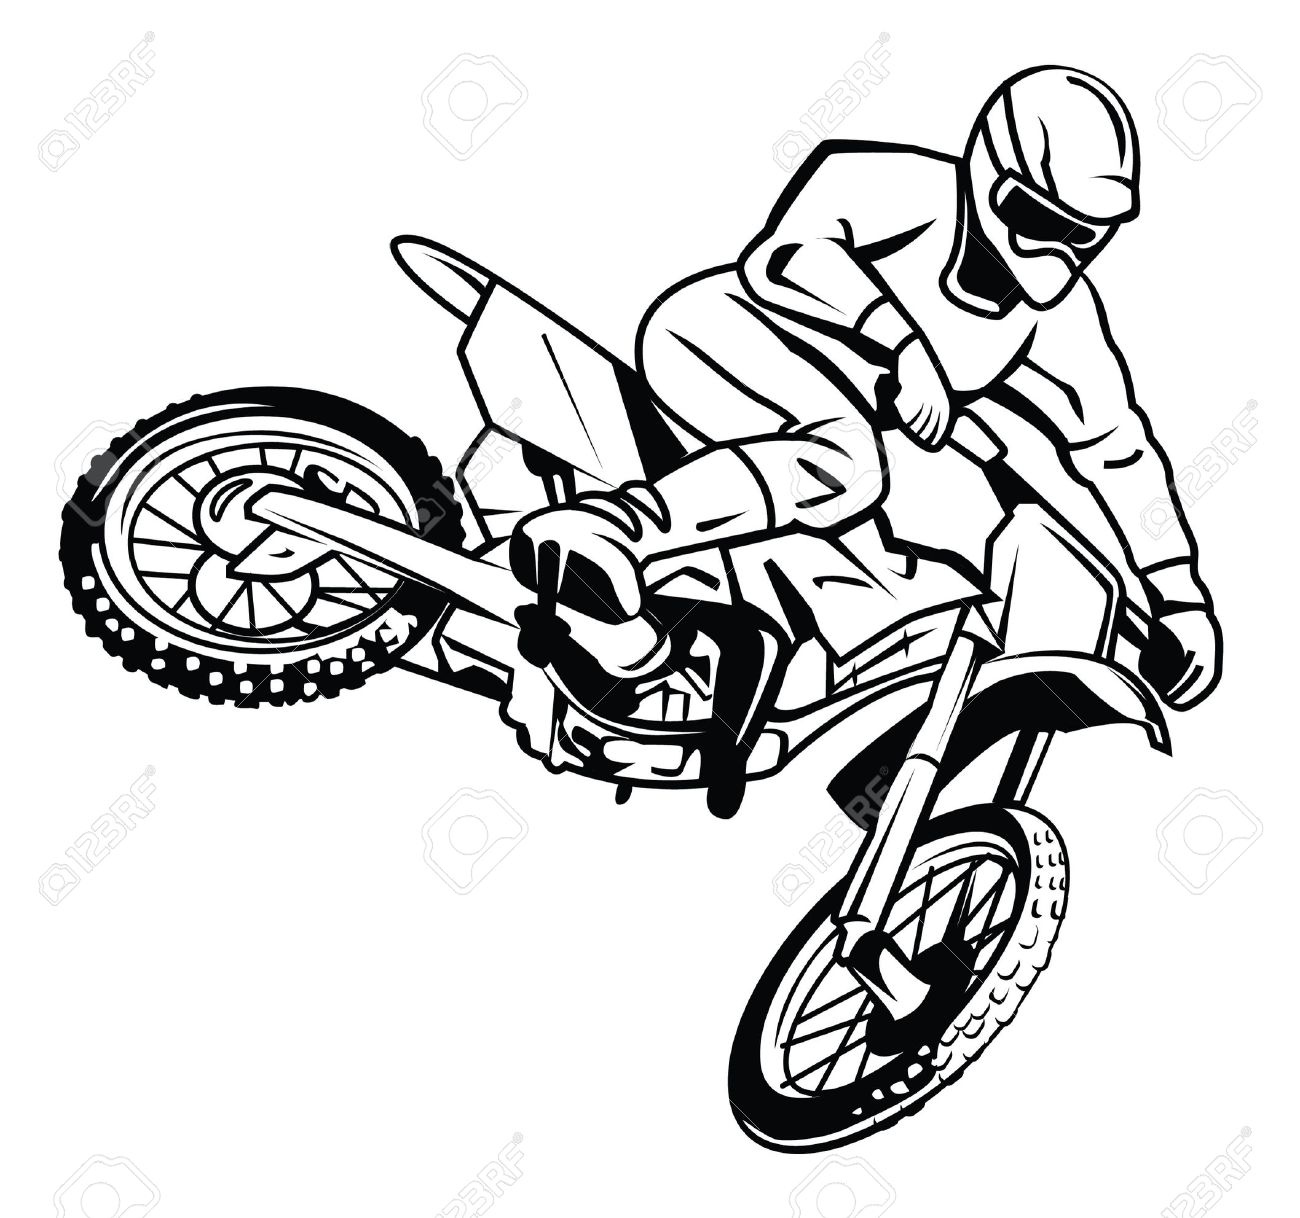 motor cross rider royalty free cliparts vectors and stock